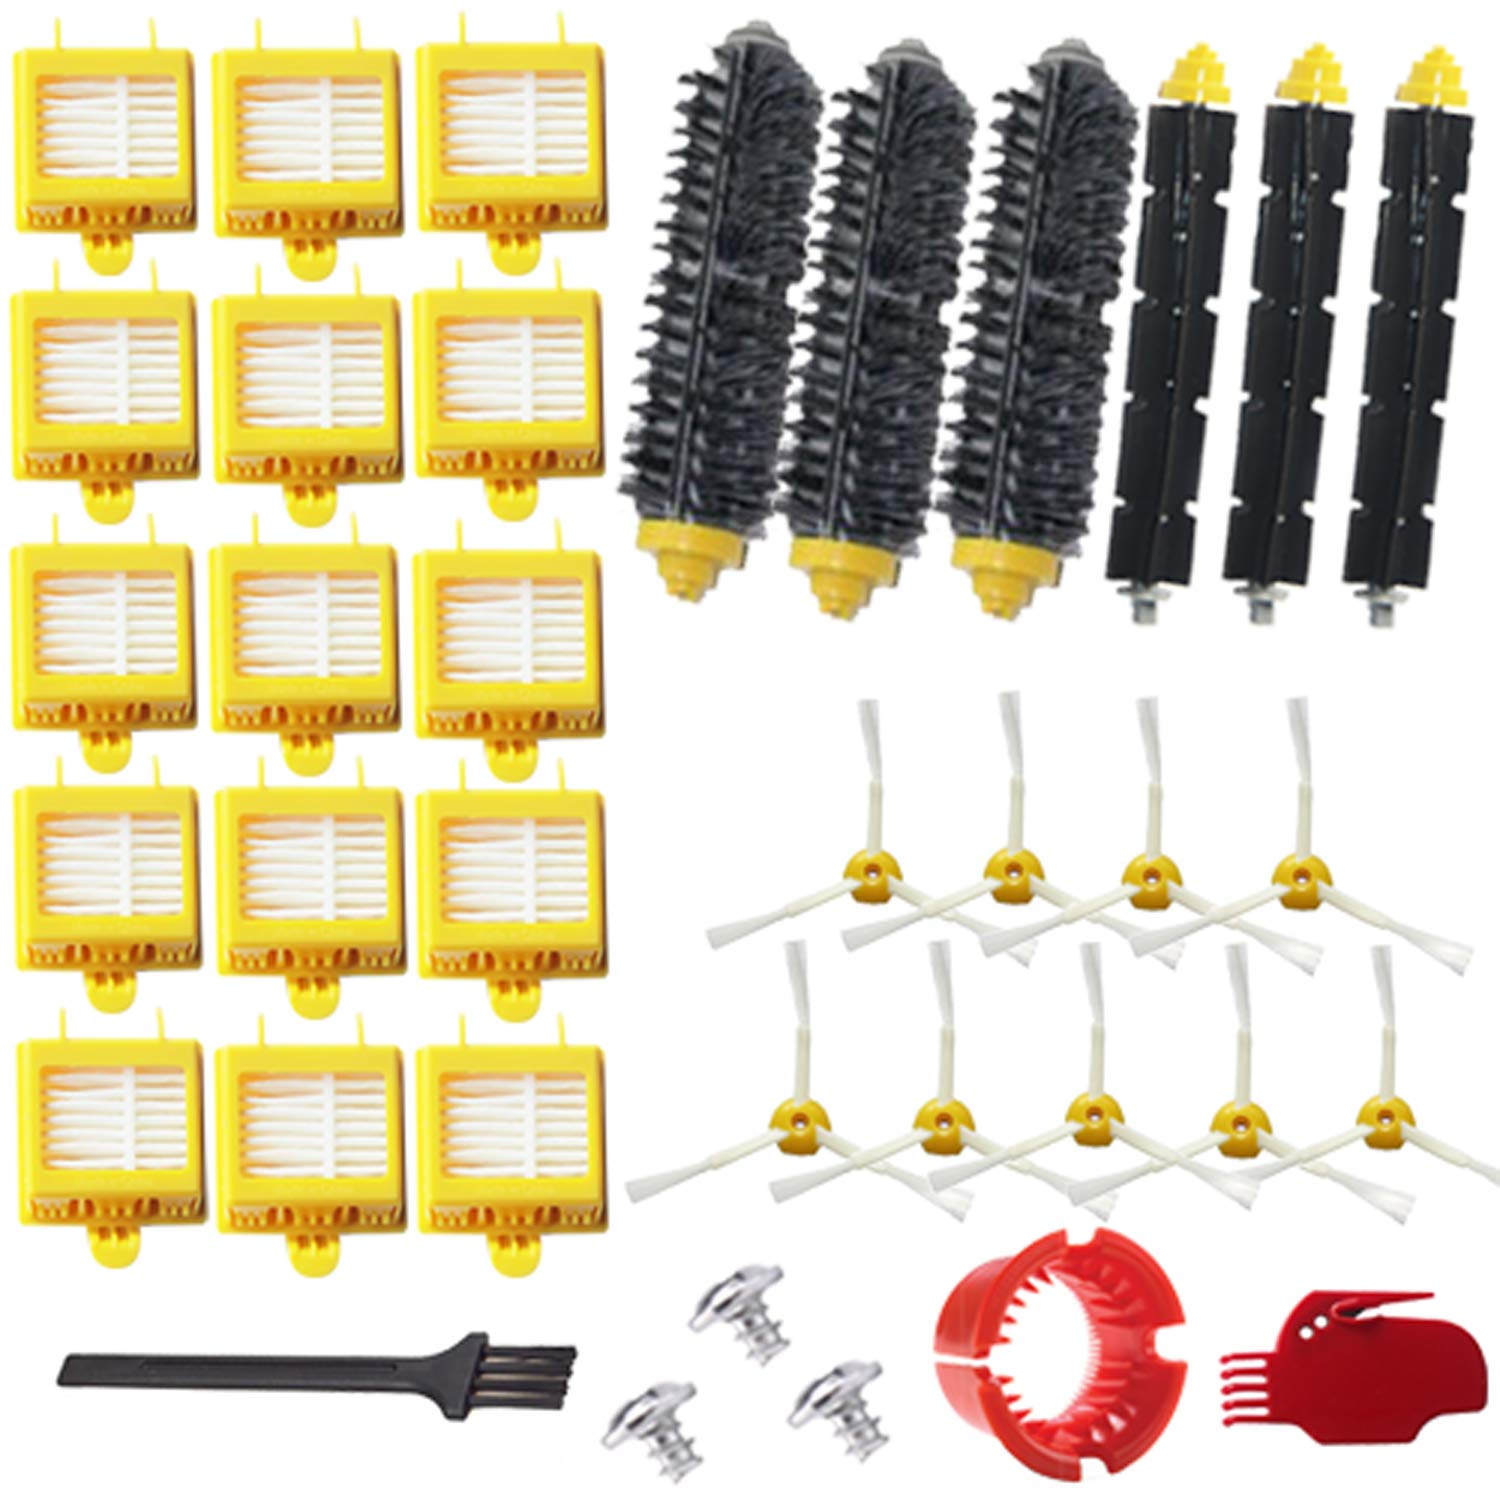 VacuumPal Replacement Parts Kit Hepa Filters & Bristle Brush & Flexible Beater & Armed-3 Side Brush & Cleaning Tools for iRobot Roomba 700 Series 760 770 780 790 Vaccum Accessories